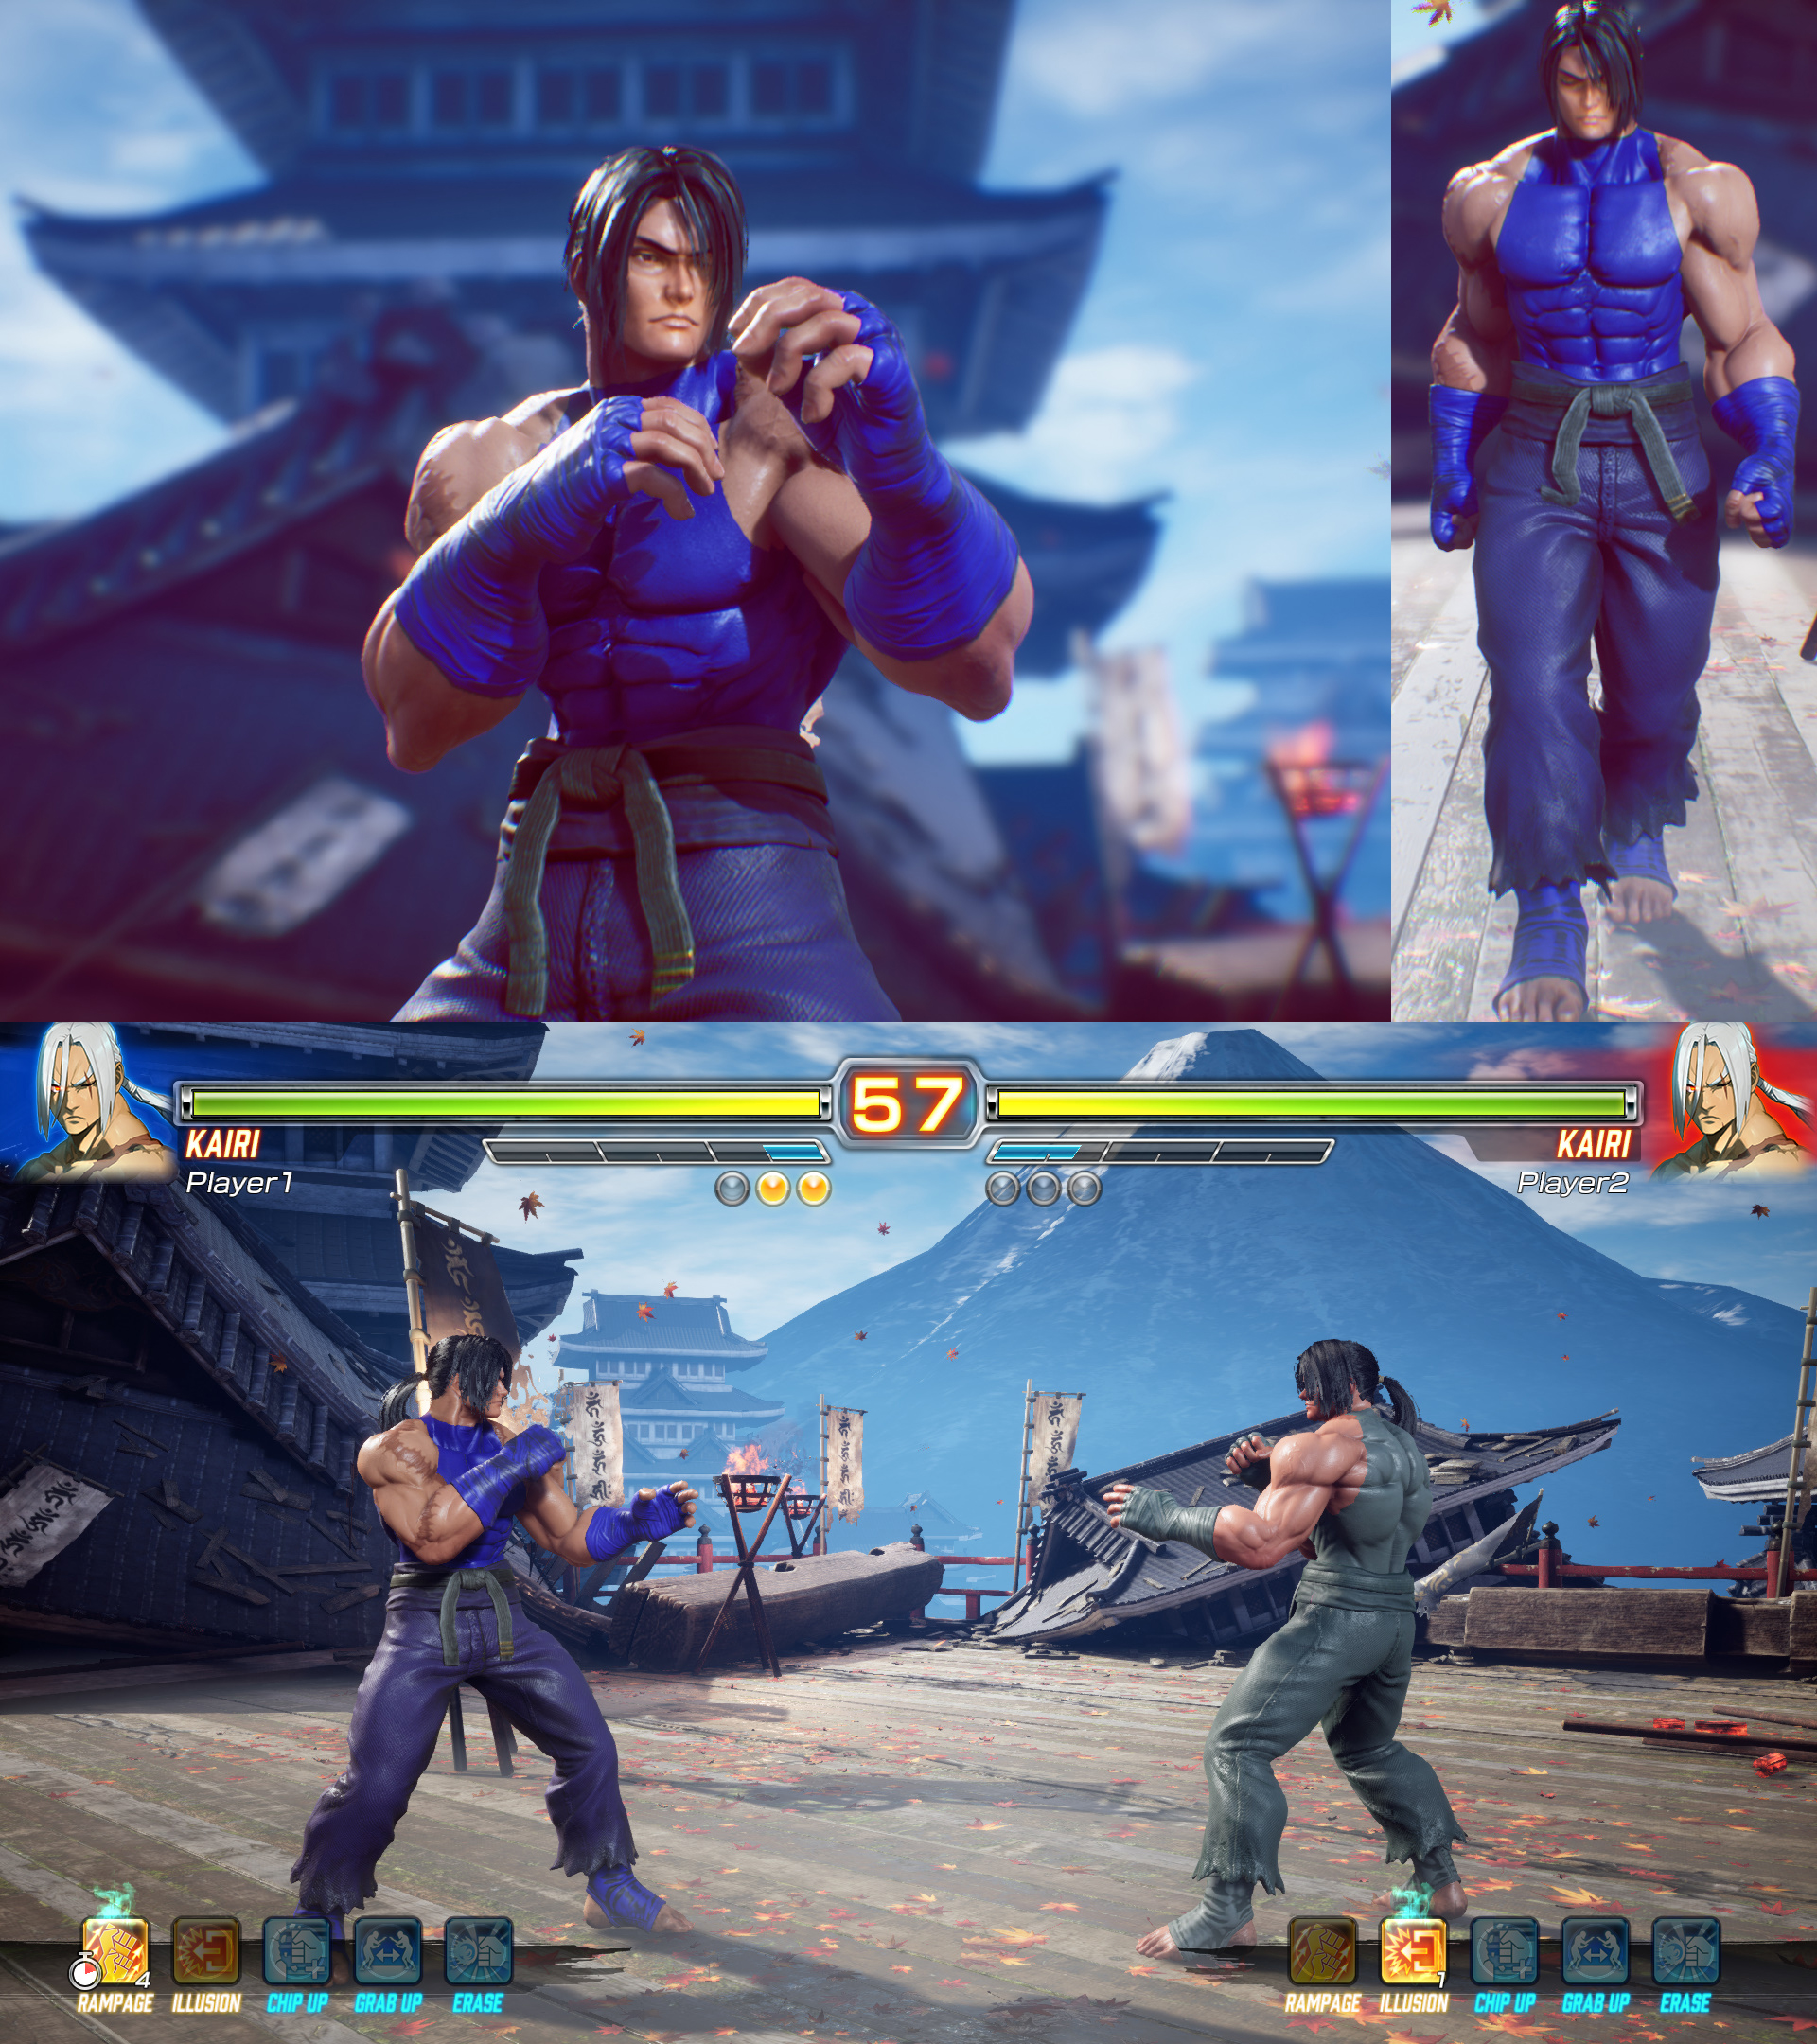 fighting ex layer mods on streetmodders deviantart fighting ex layer mods on streetmodders